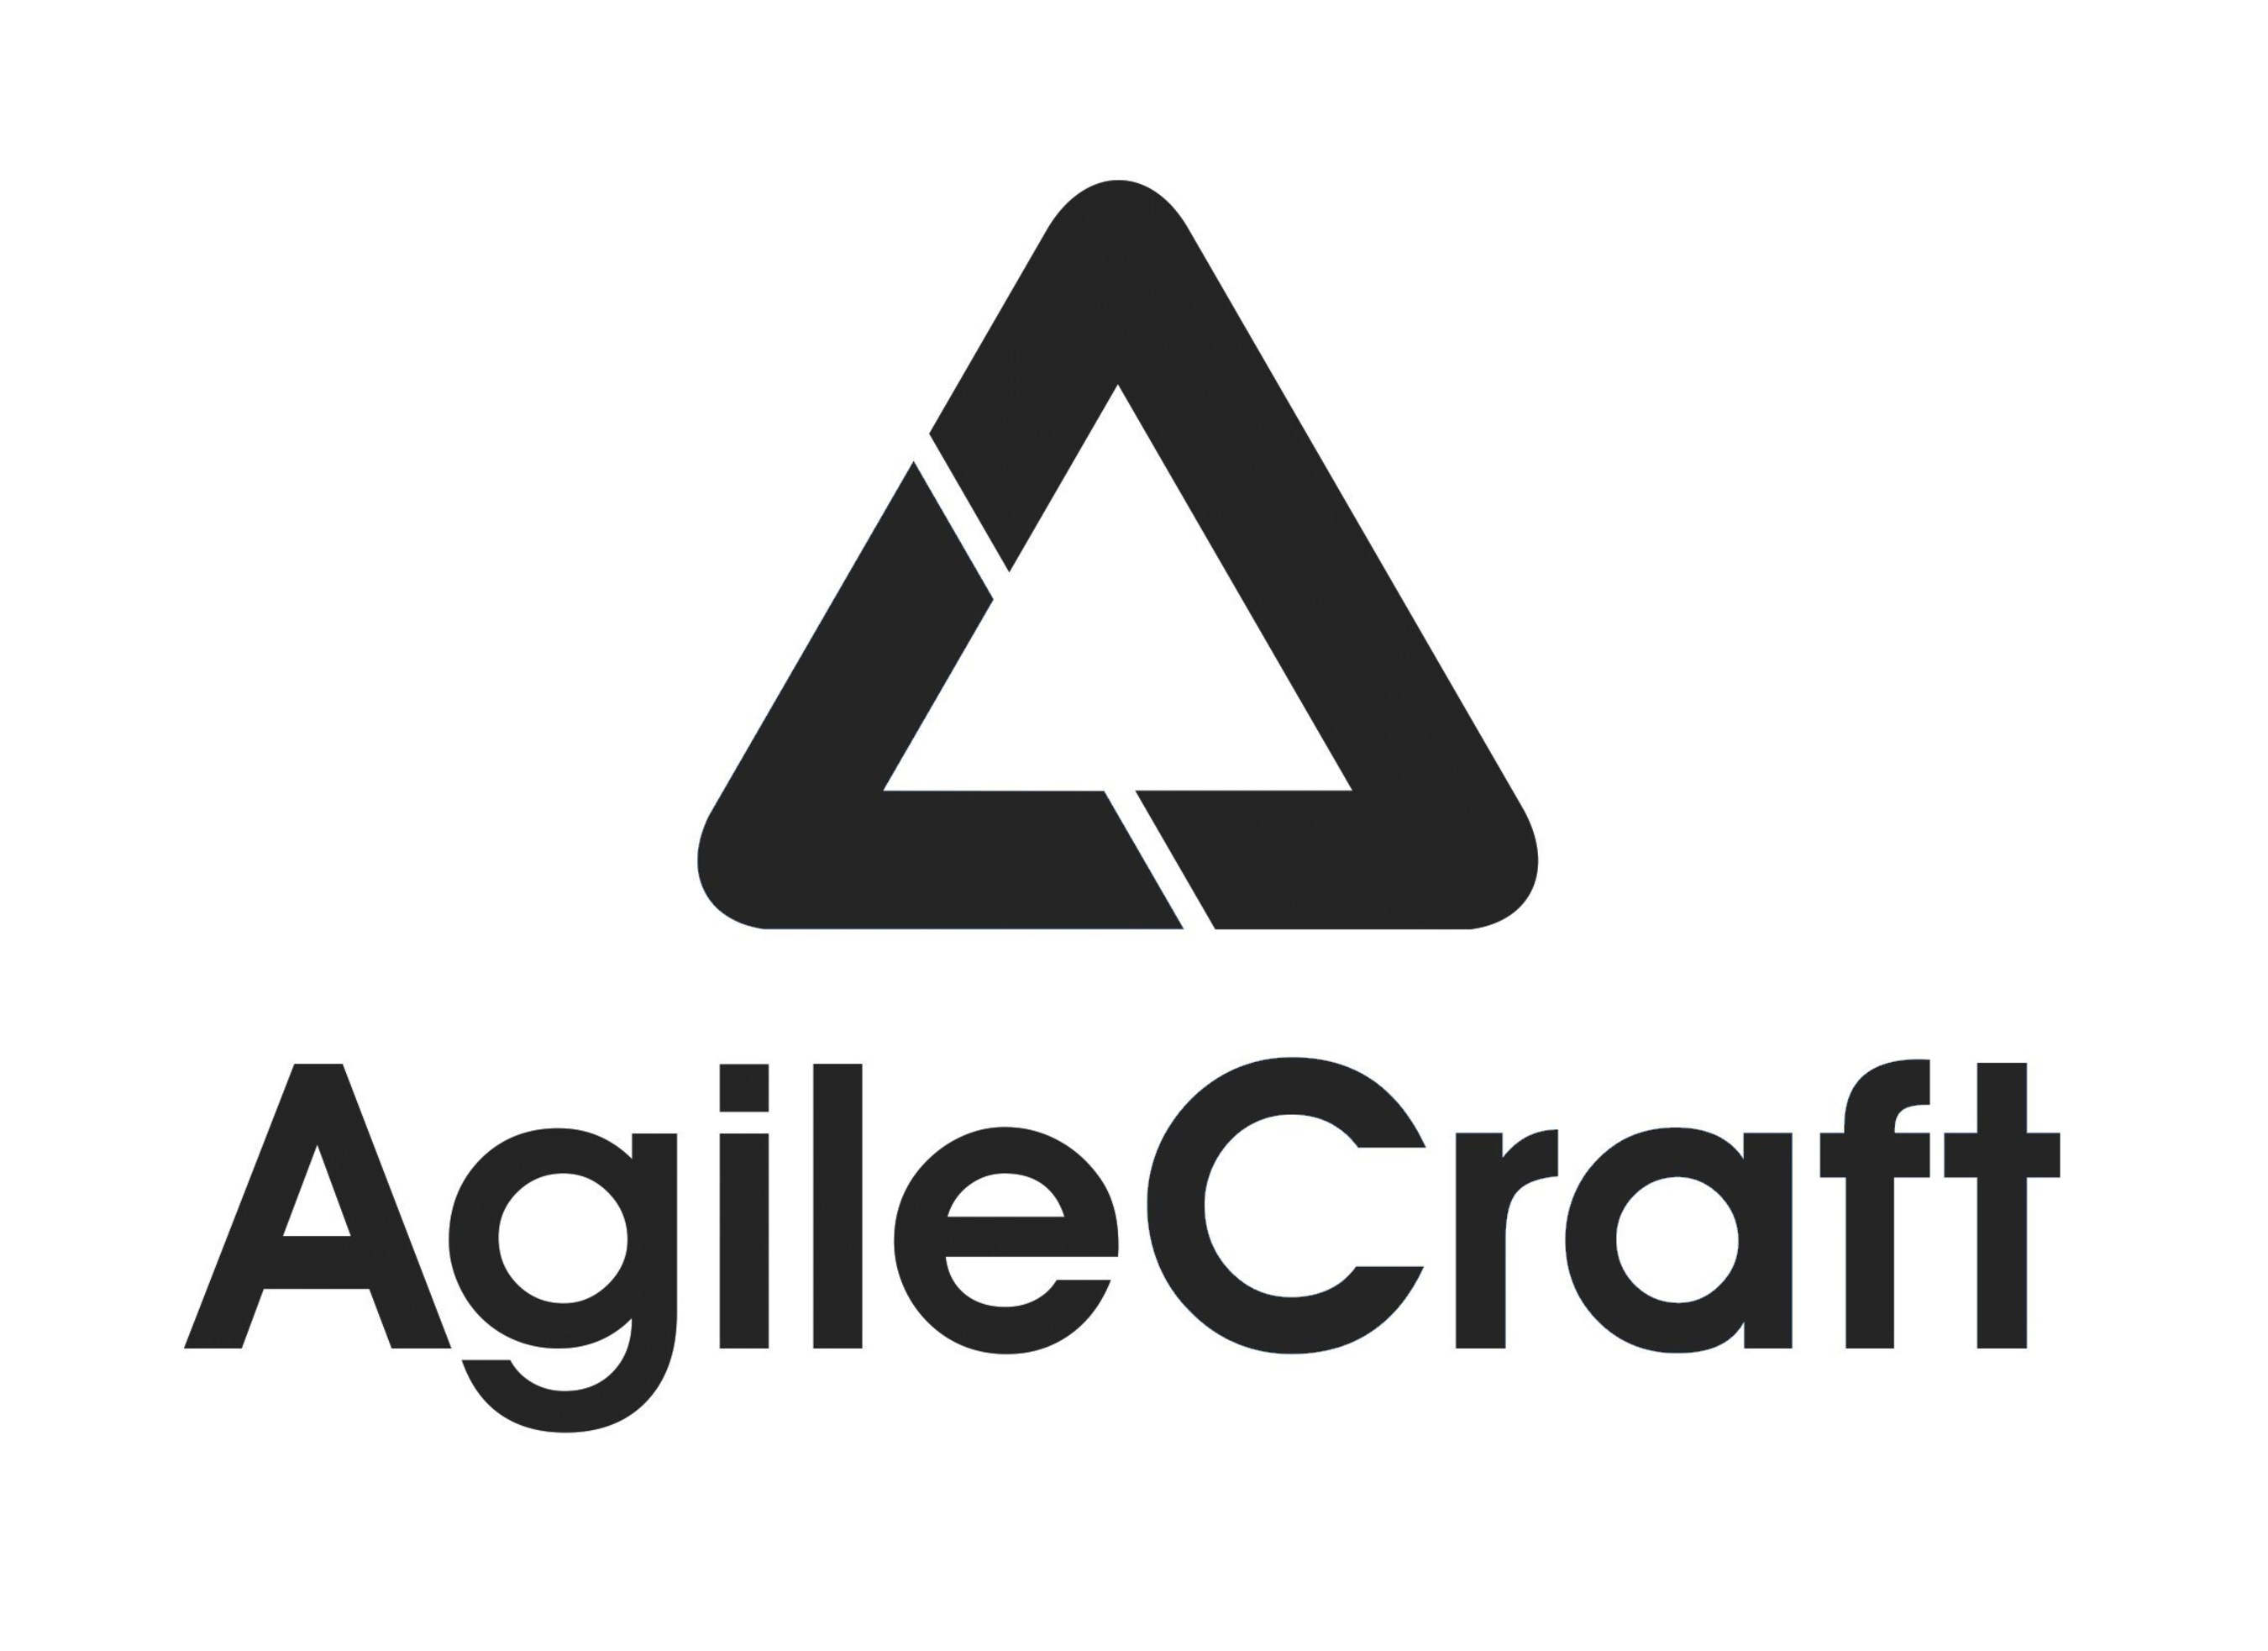 Agilecraft achieves scaled agiles highest level of partner agilecraft achieves scaled agiles highest level of partner certification supporting safe xflitez Image collections